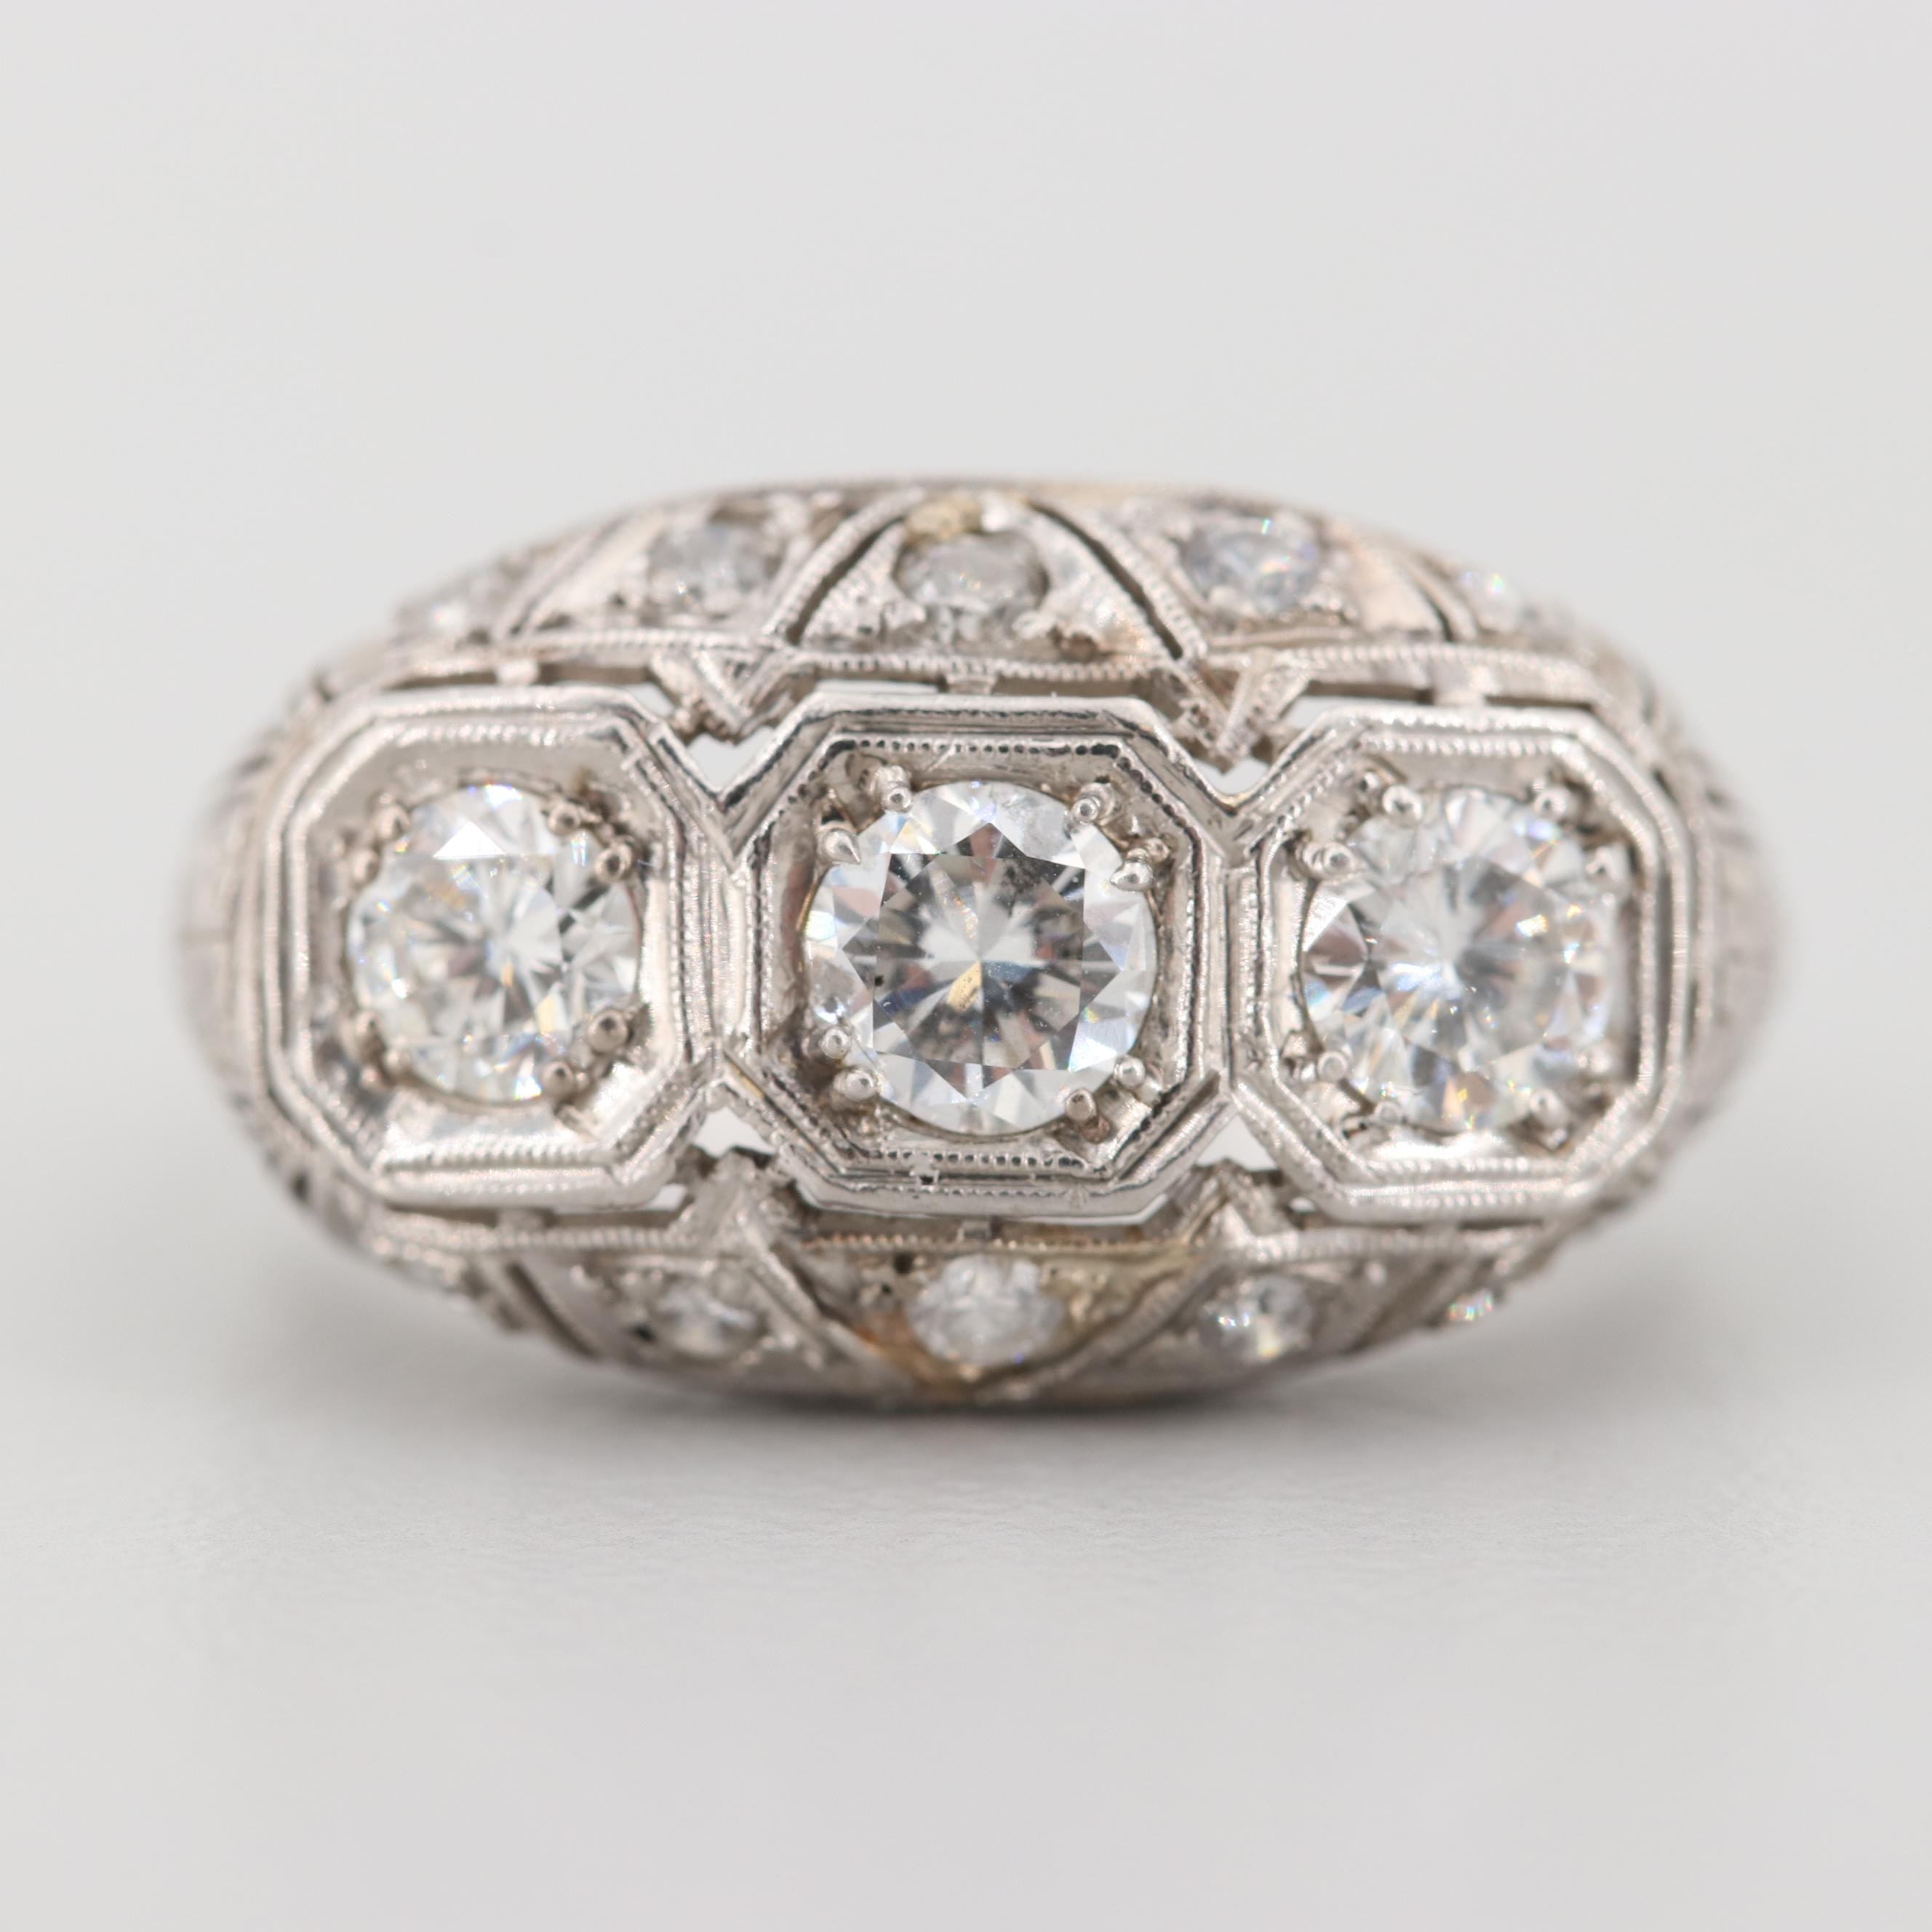 Vintage Platinum 1.22 CTW Diamond and Cubic Zirconia Ring